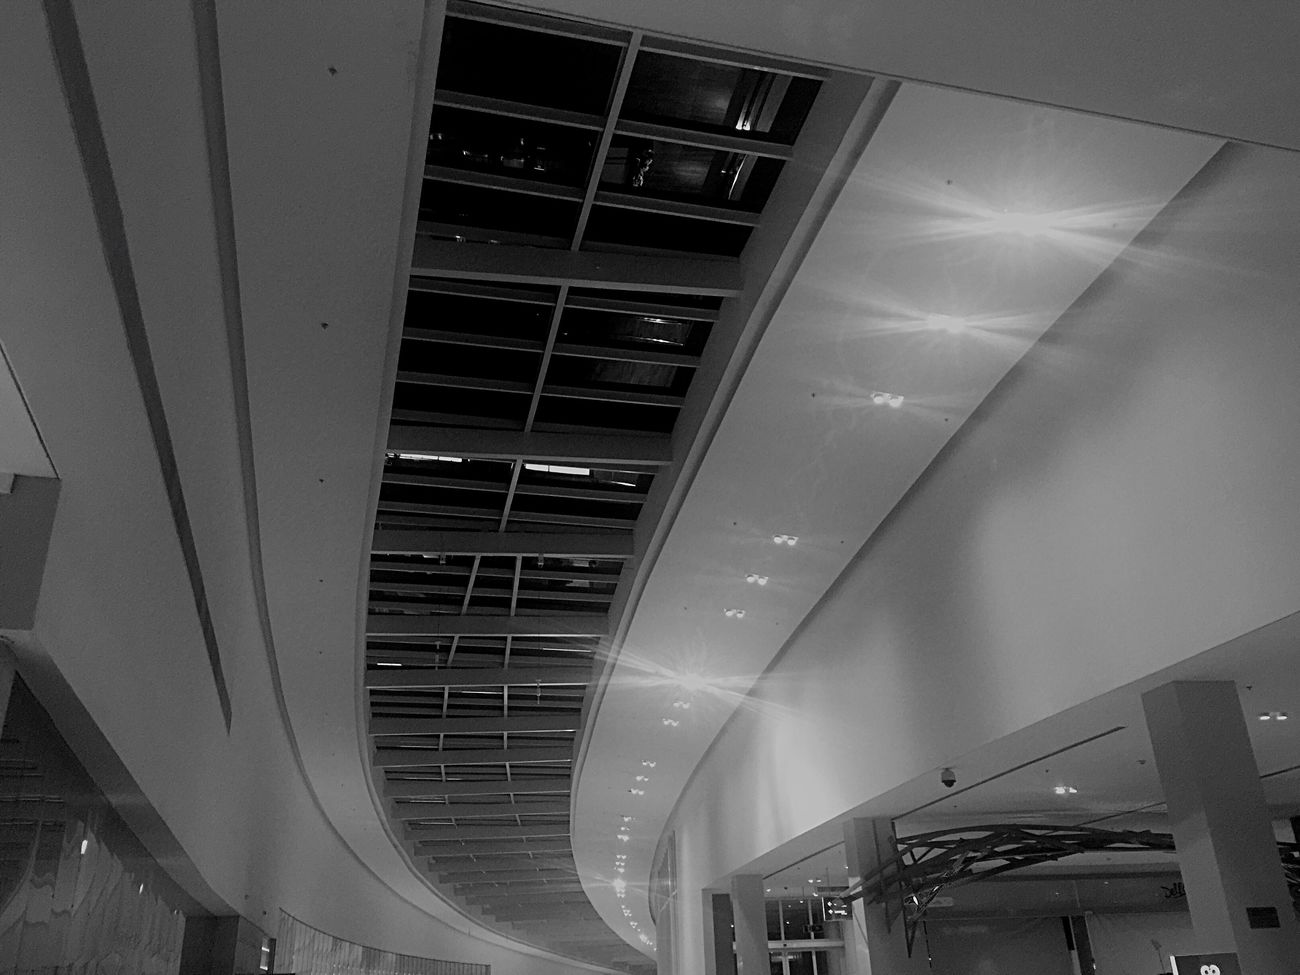 Architecture Built Structure Low Angle View Indoors  Modern IPhoneography Black & White Blackandwhite Blackandwhite Photography